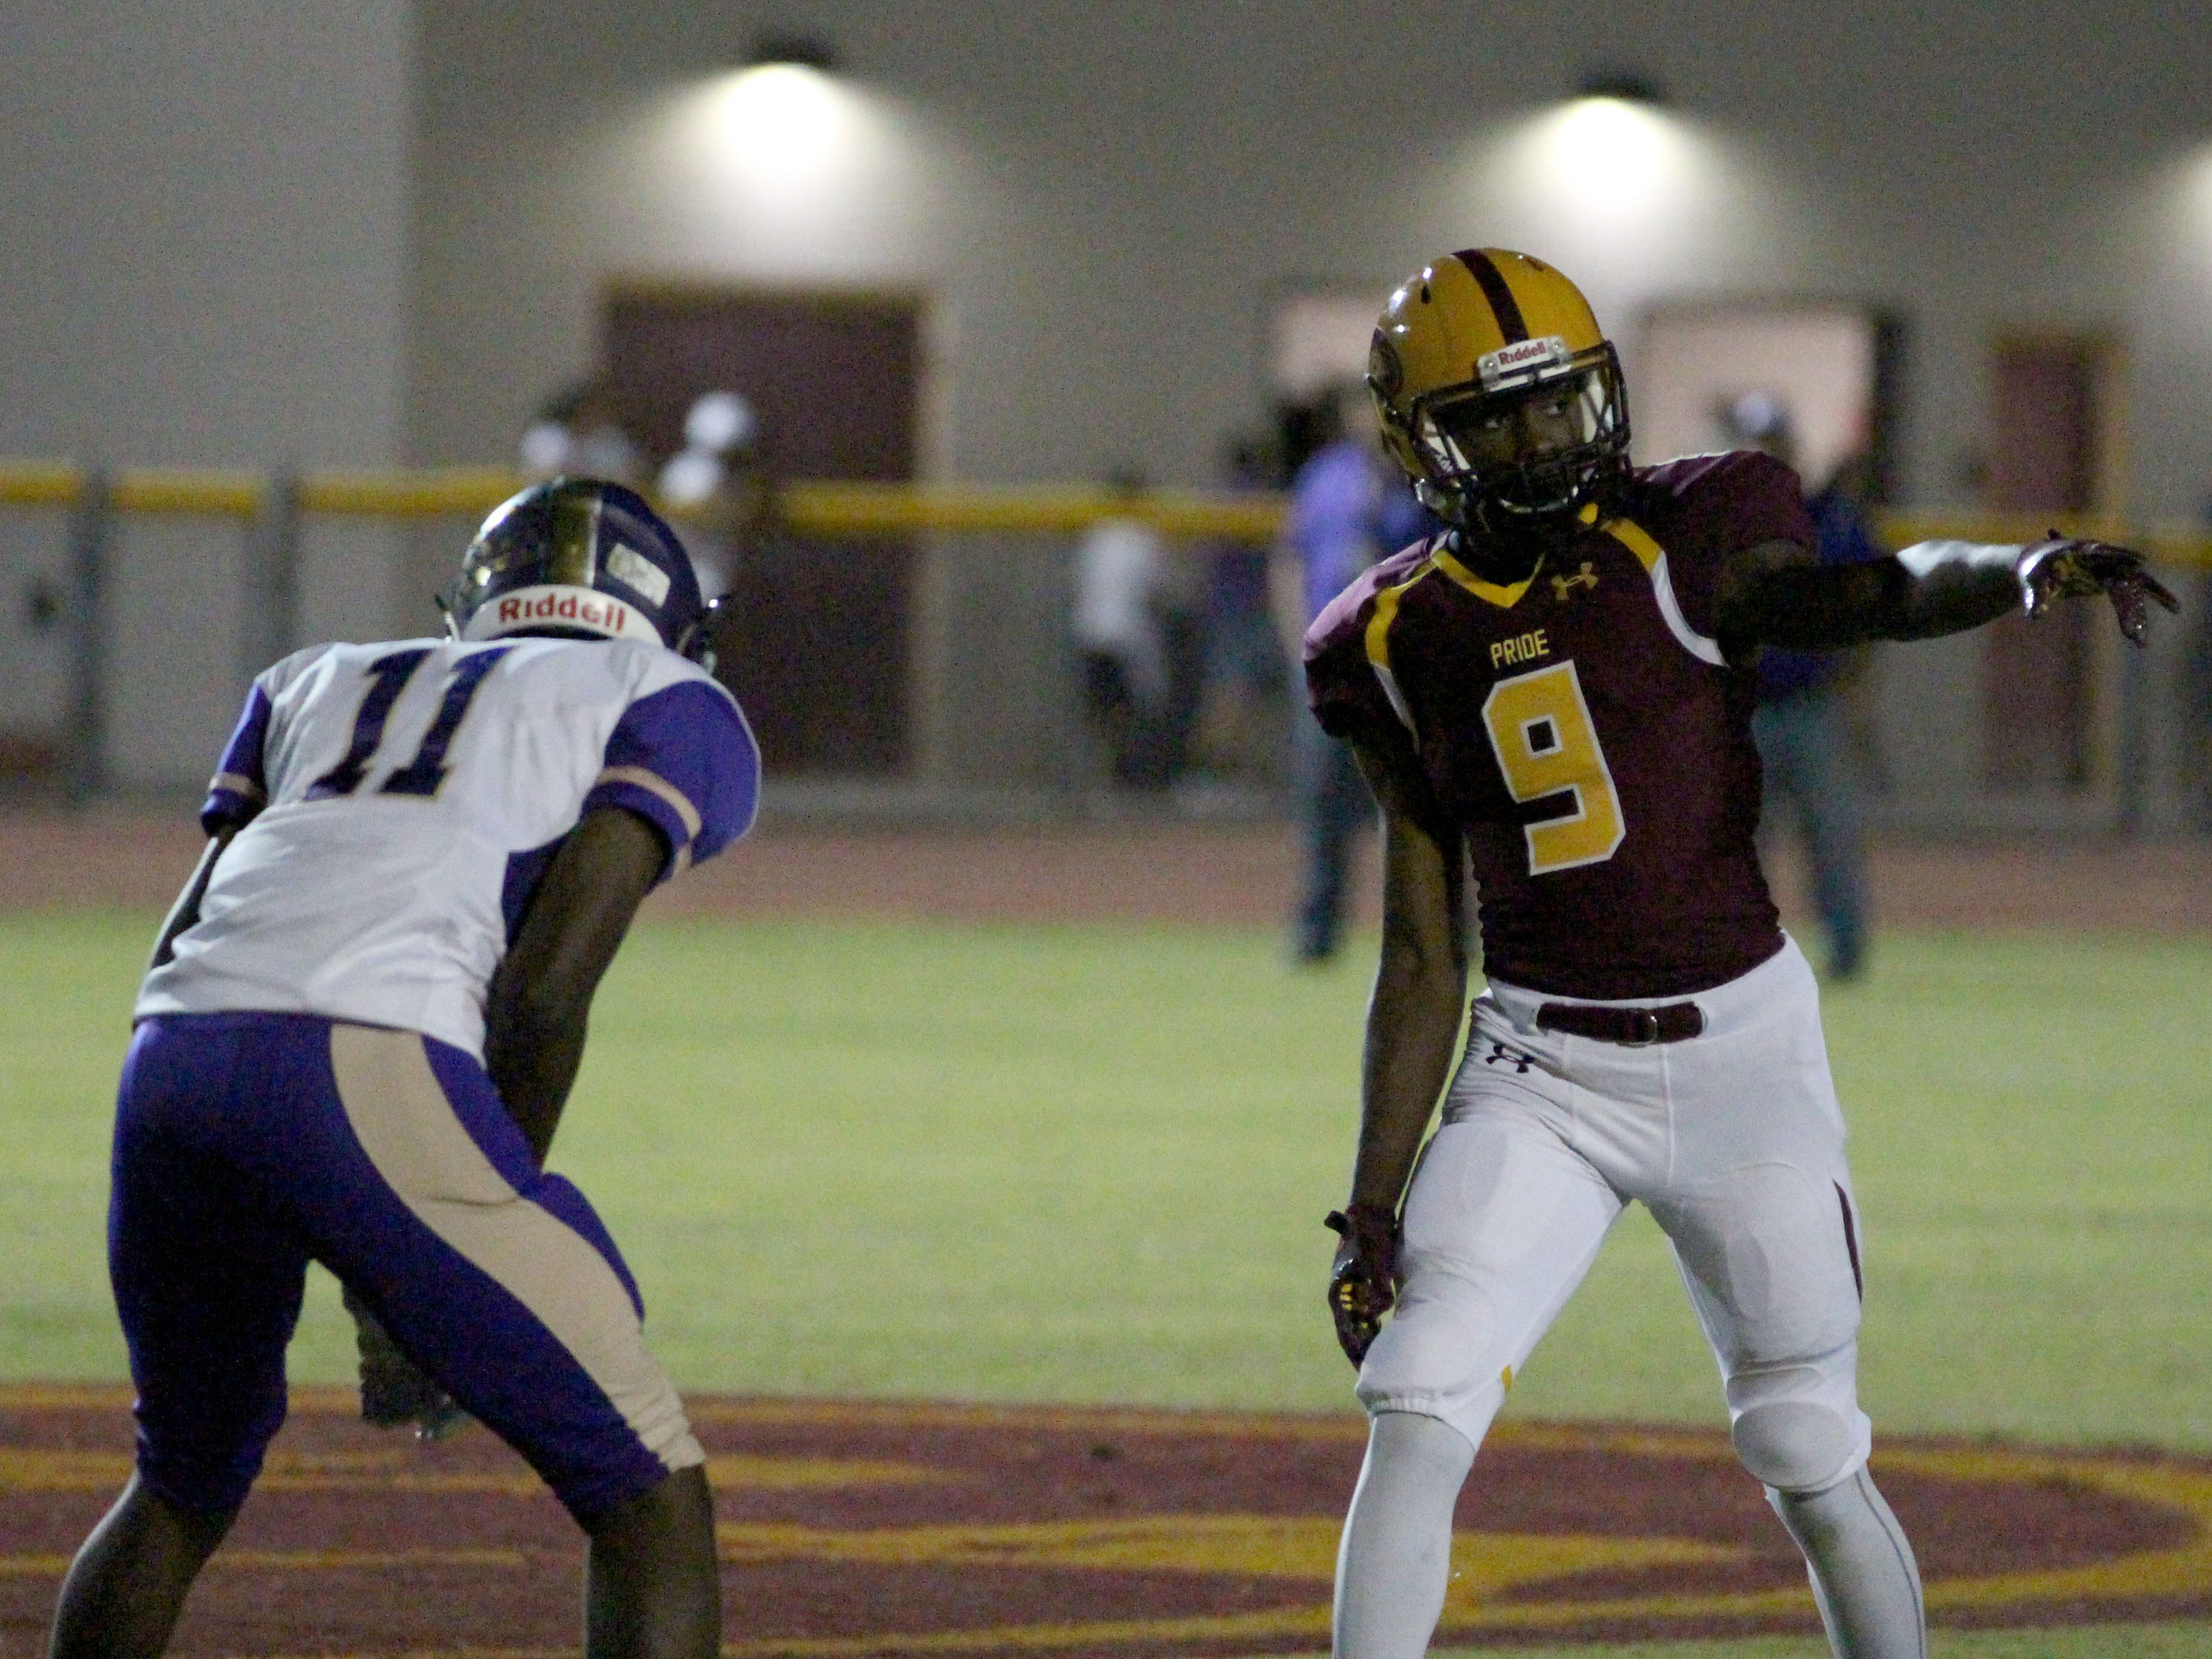 Mountain Pointe's Dominique Davis points to the referee during the game against Queen Creek on Friday night at Mountain Pointe High School on Sept. 21, 2018.